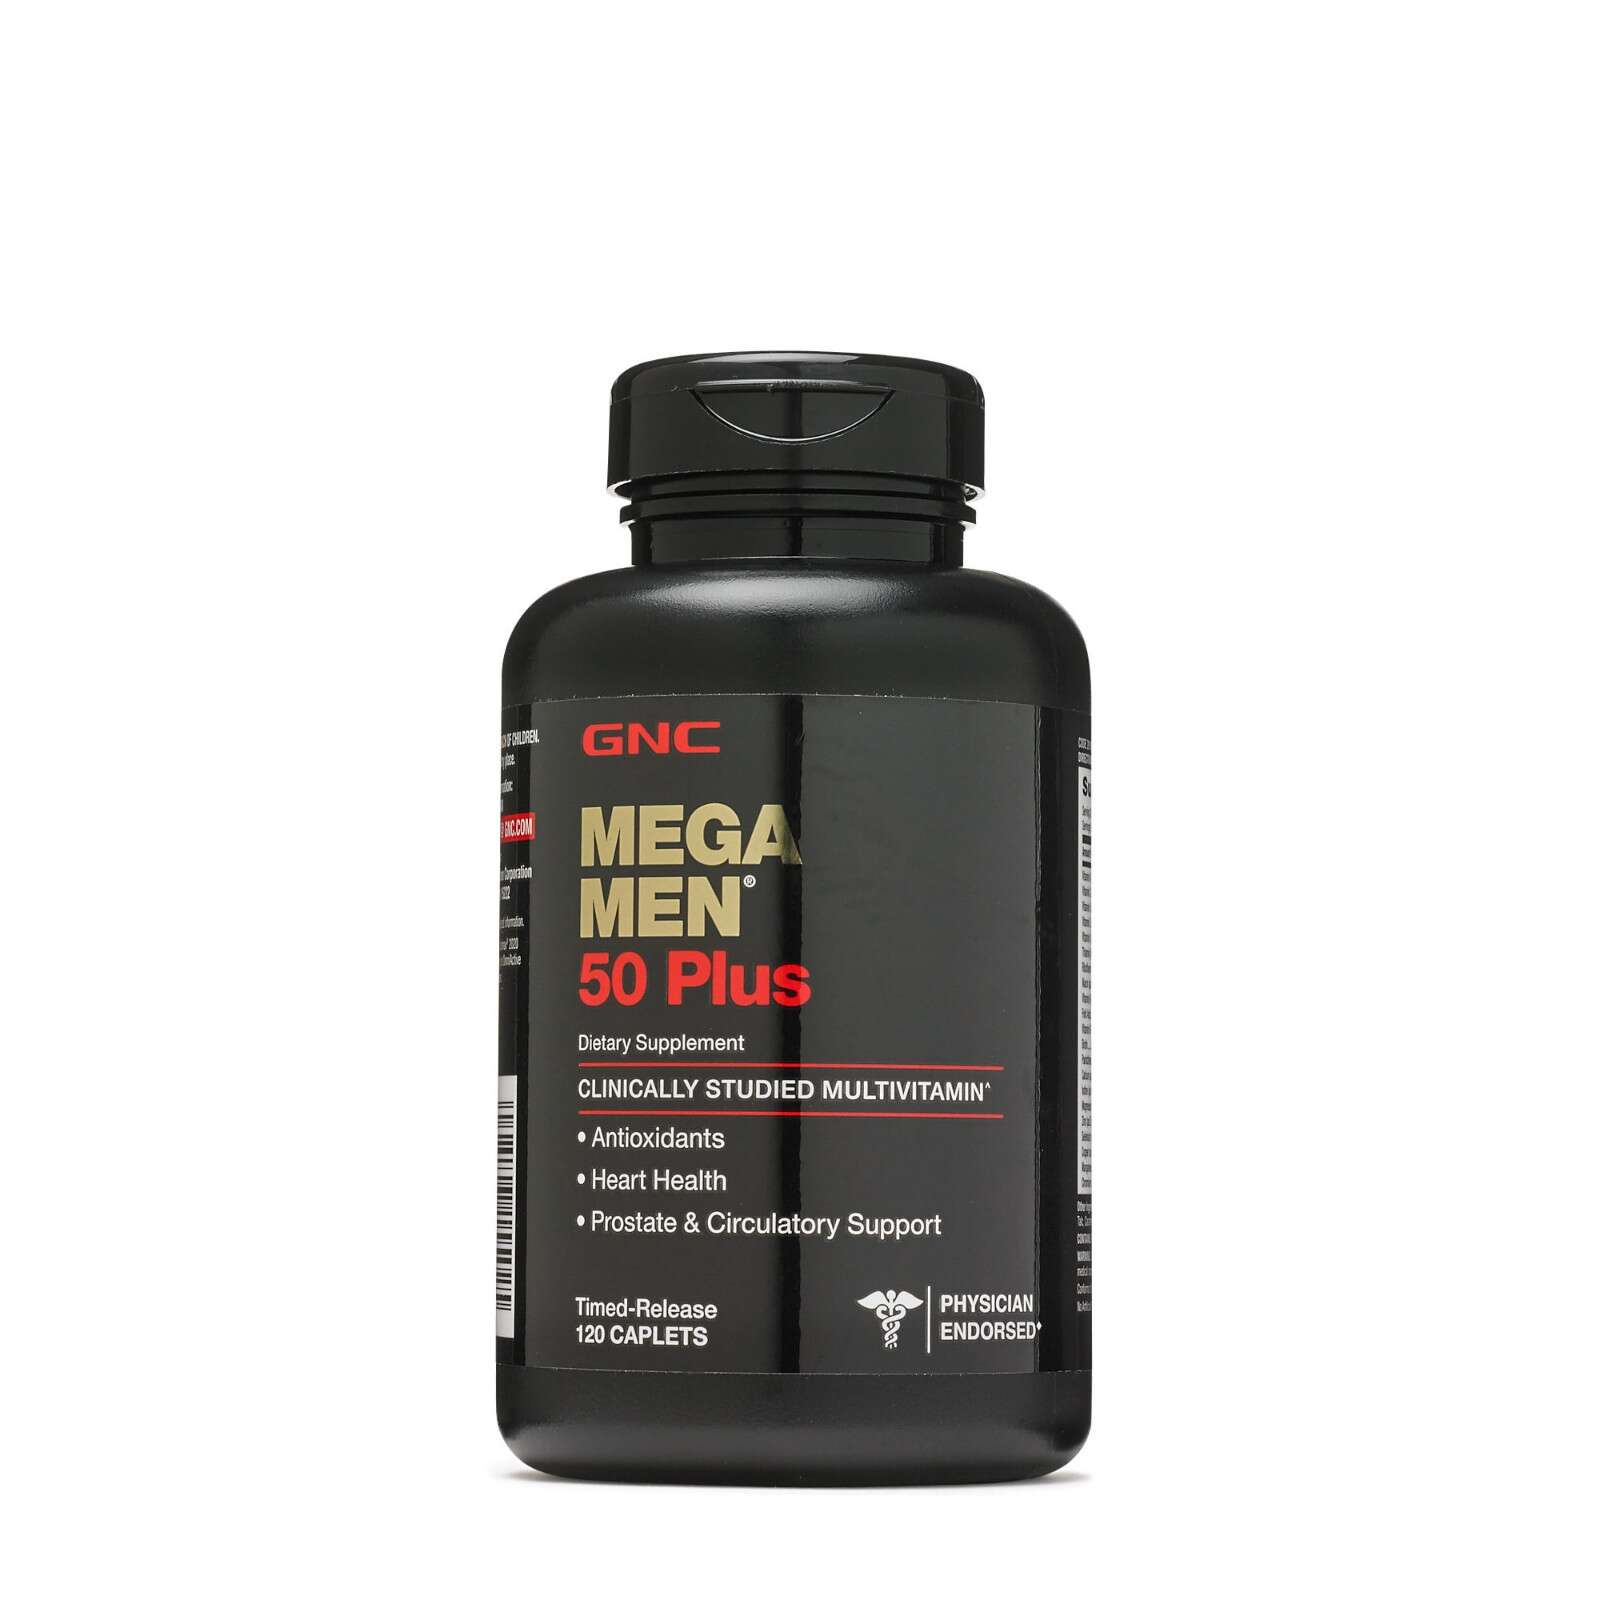 GNC MEGA MEN® 50 PLUS